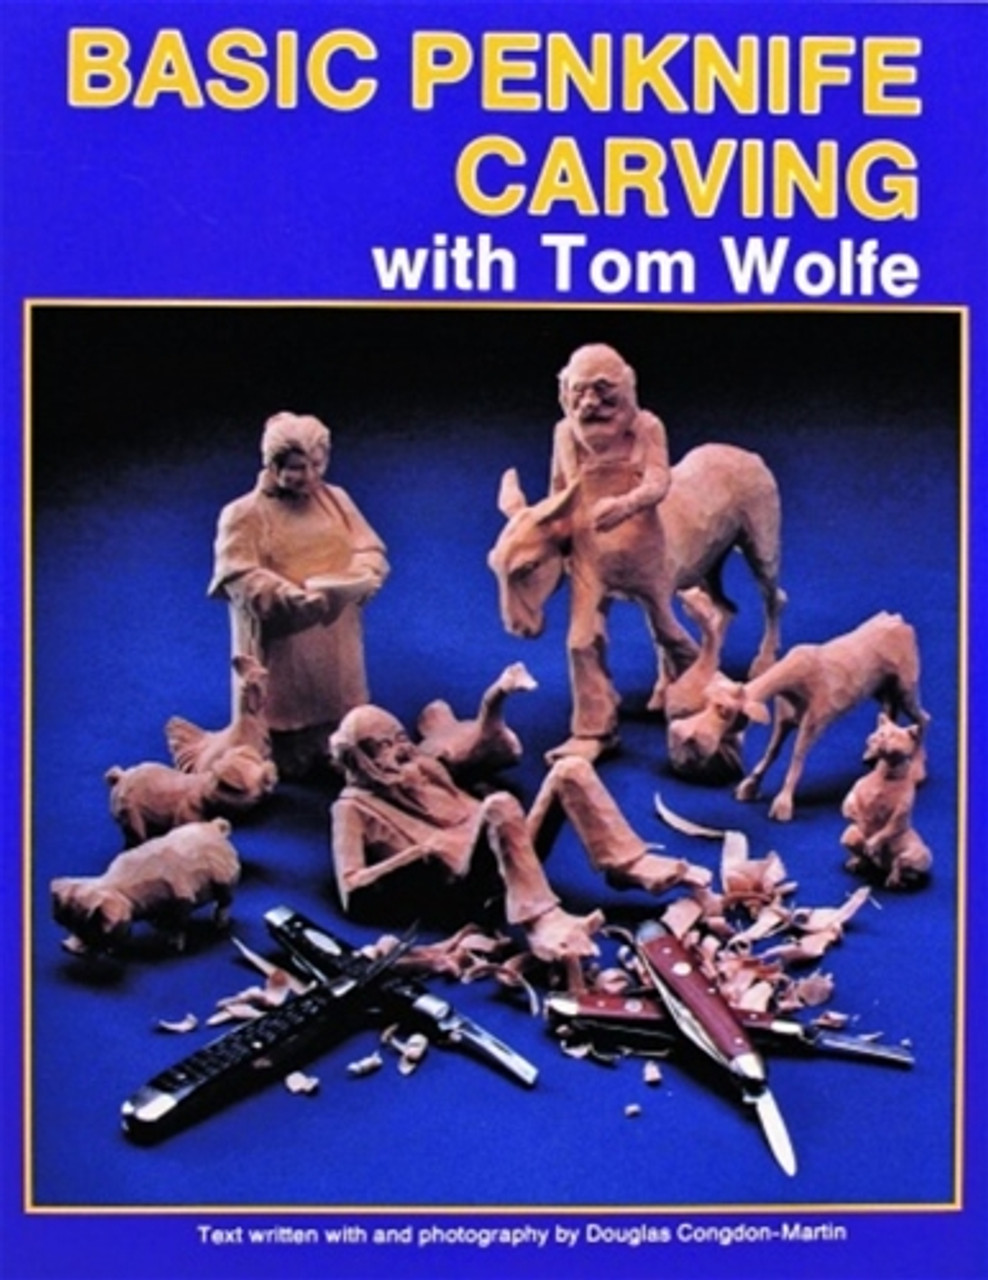 Basic Penknife Carving with Tom Wolfe showing the penknife caricatures you can carve.